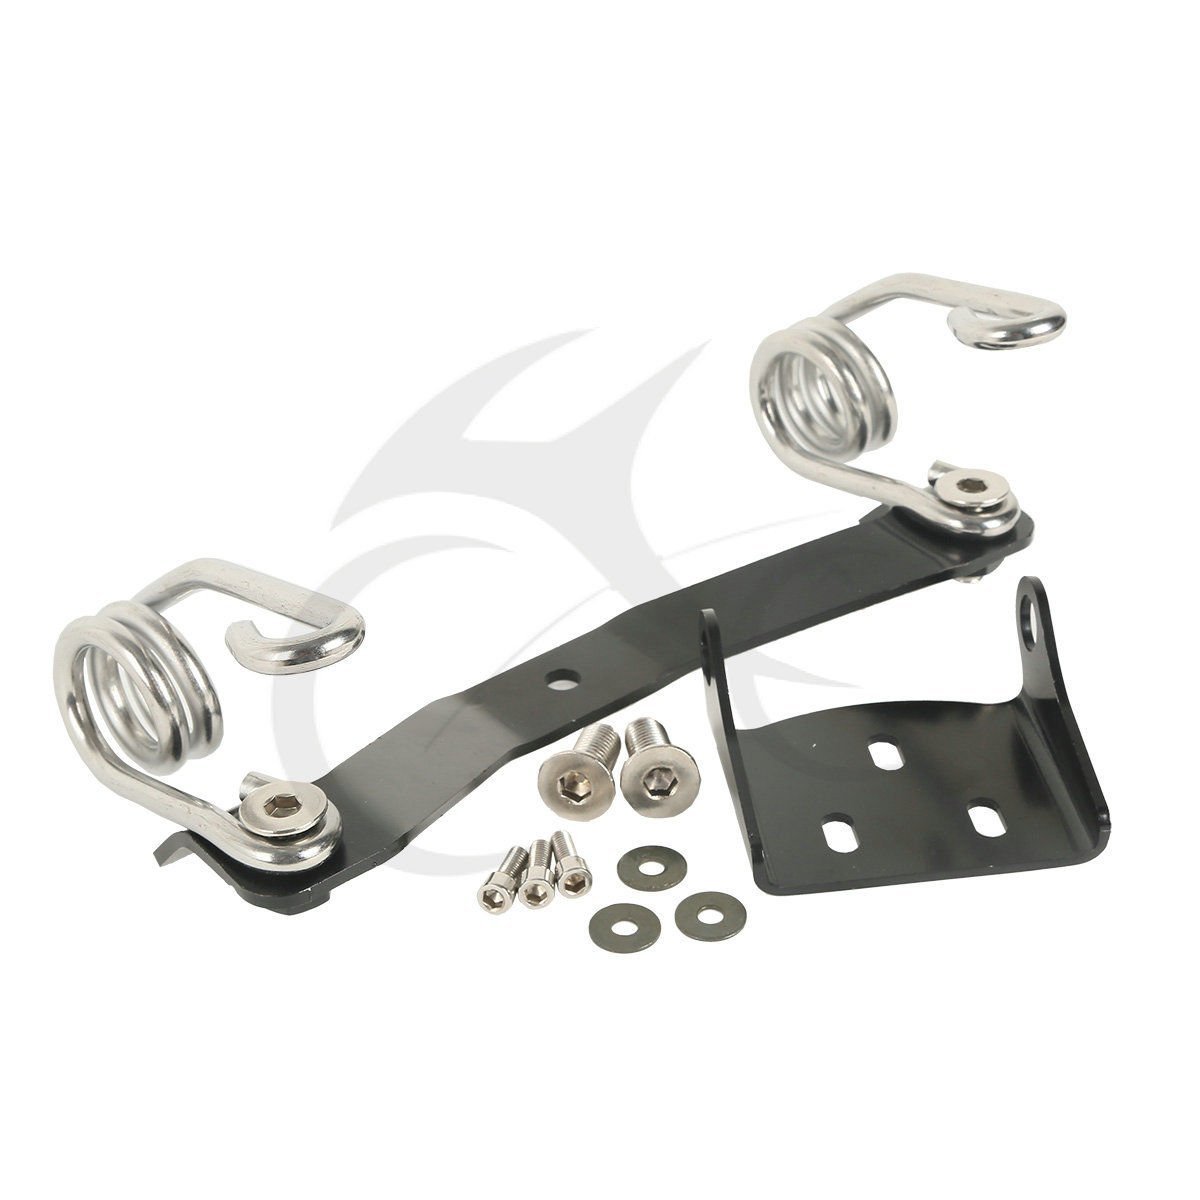 XFMT Spring-Solo-Seat-Mount-For-04-06-10-16-Harley-Sportster-XL1200-XL883-Iron-883-XL